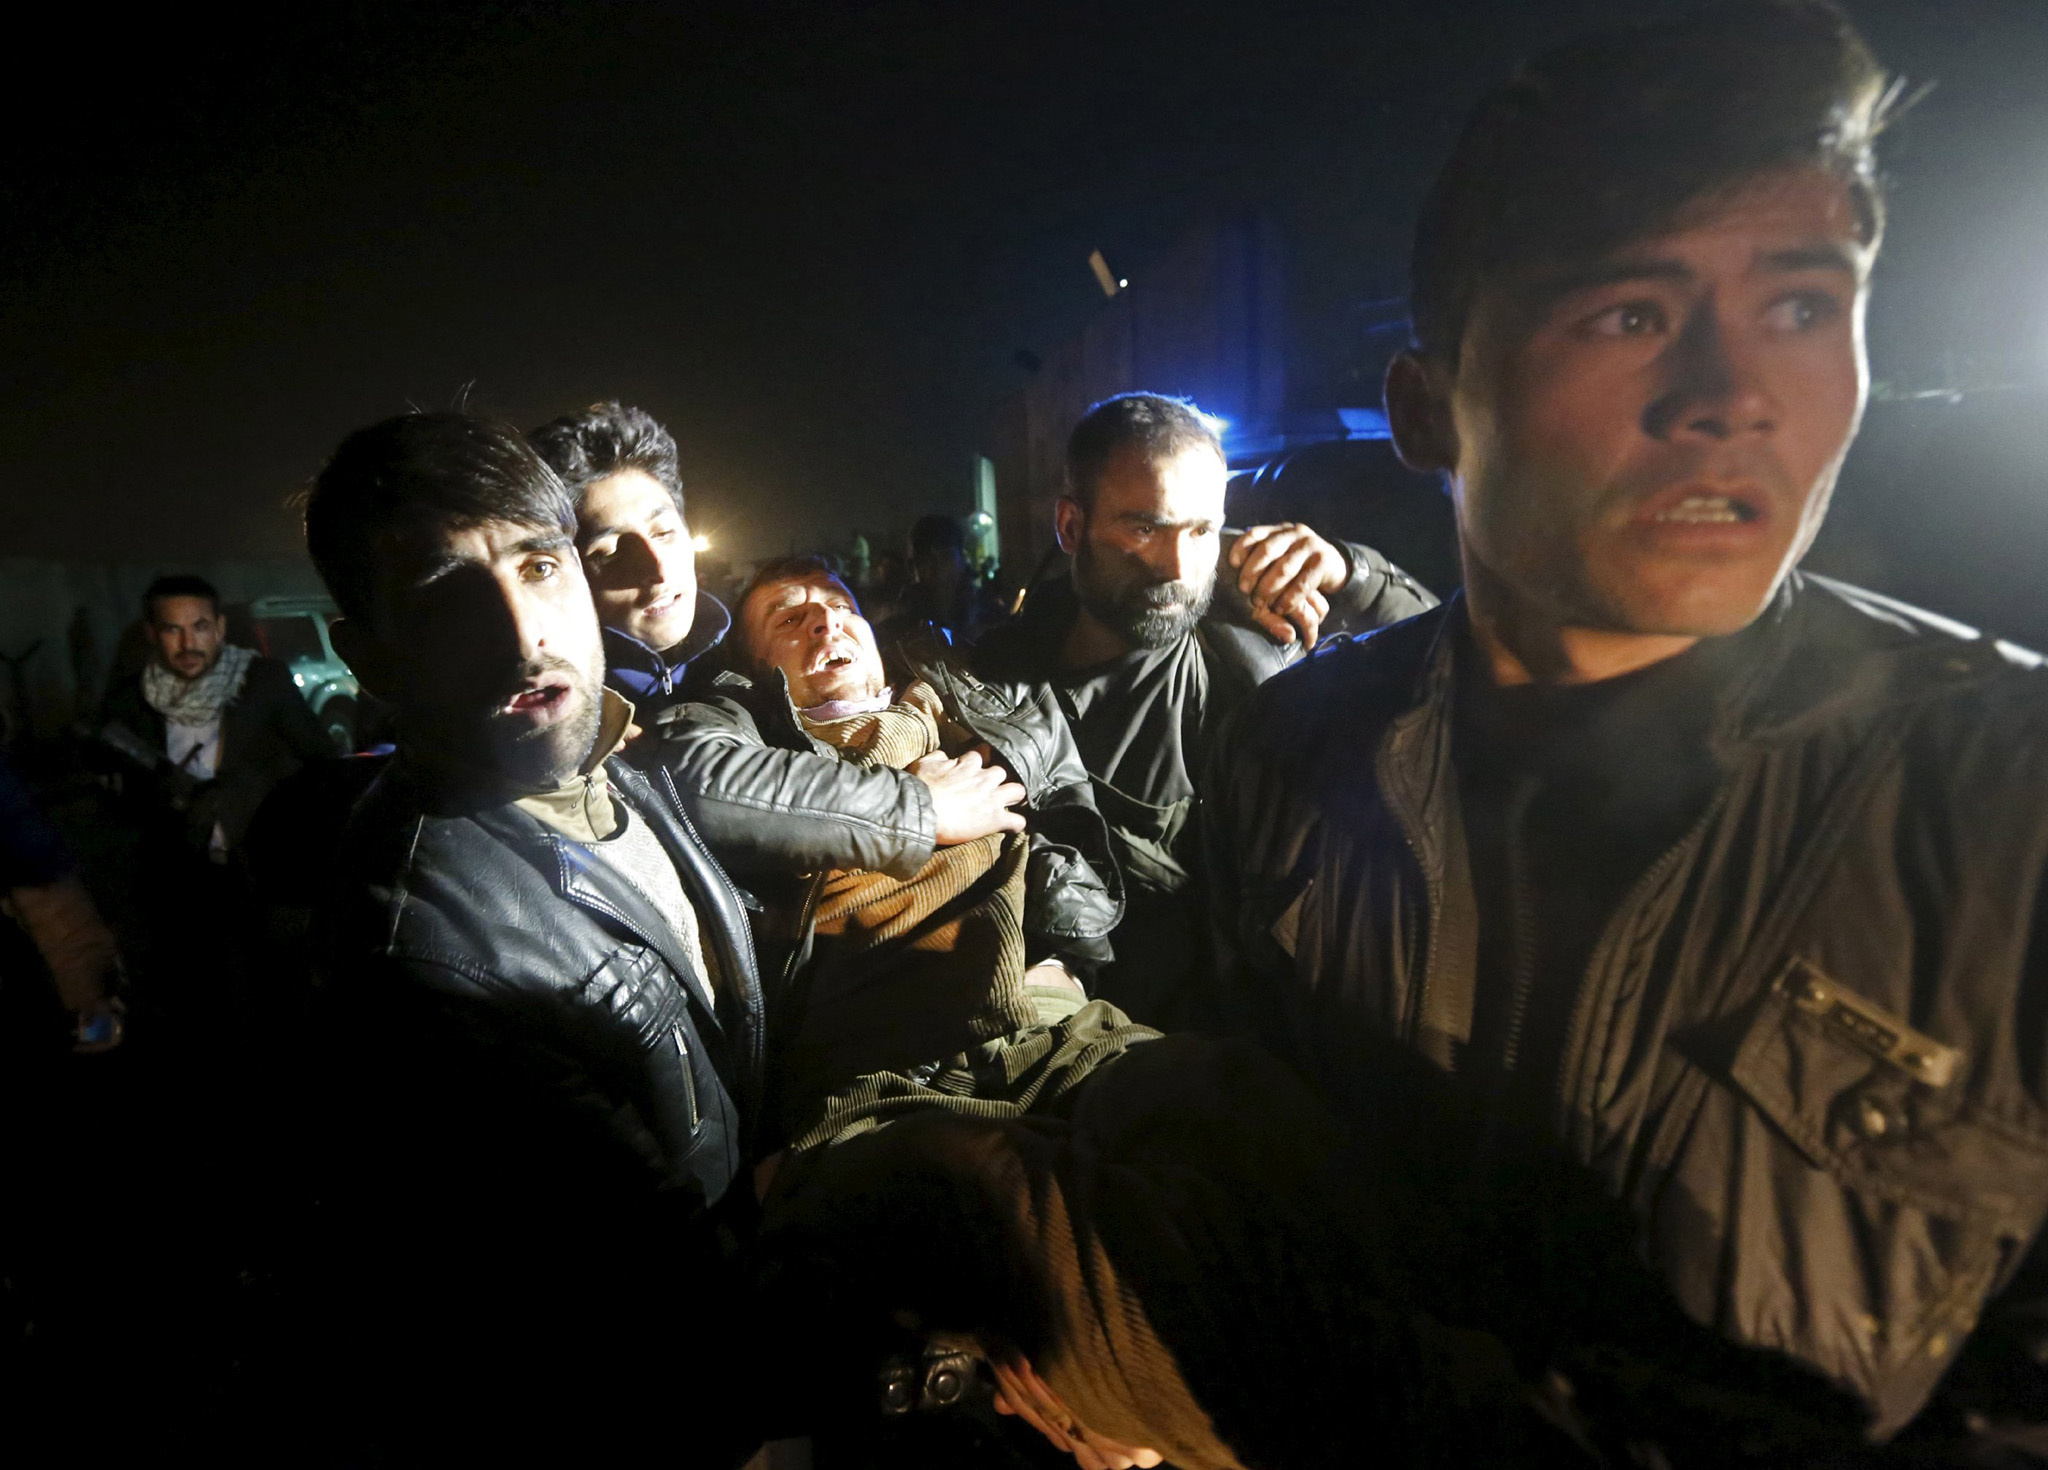 "Afghan men carry a wounded man at the site of an explosion in Kabul, Afghanistan January 4, 2016. A large explosion struck close to Kabul airport on Monday, causing at least 10 casualties near to the area where a suicide bomber blew himself up earlier in the day in the latest in a series of attacks in the Afghan capital over the past week. REUTERS/Omar Sobhani       TPX IMAGES OF THE DAYREUTERS NEWS PICTURES HAS NOW MADE IT EASIER TO FIND THE BEST PHOTOS FROM THE MOST IMPORTANT STORIES AND TOP STANDALONES EACH DAY. Search for ""TPX"" in the IPTC Supplemental Category field or ""IMAGES OF THE DAY"" in the Caption field and you will find a selection of 80-100 of our daily Top Pictures."